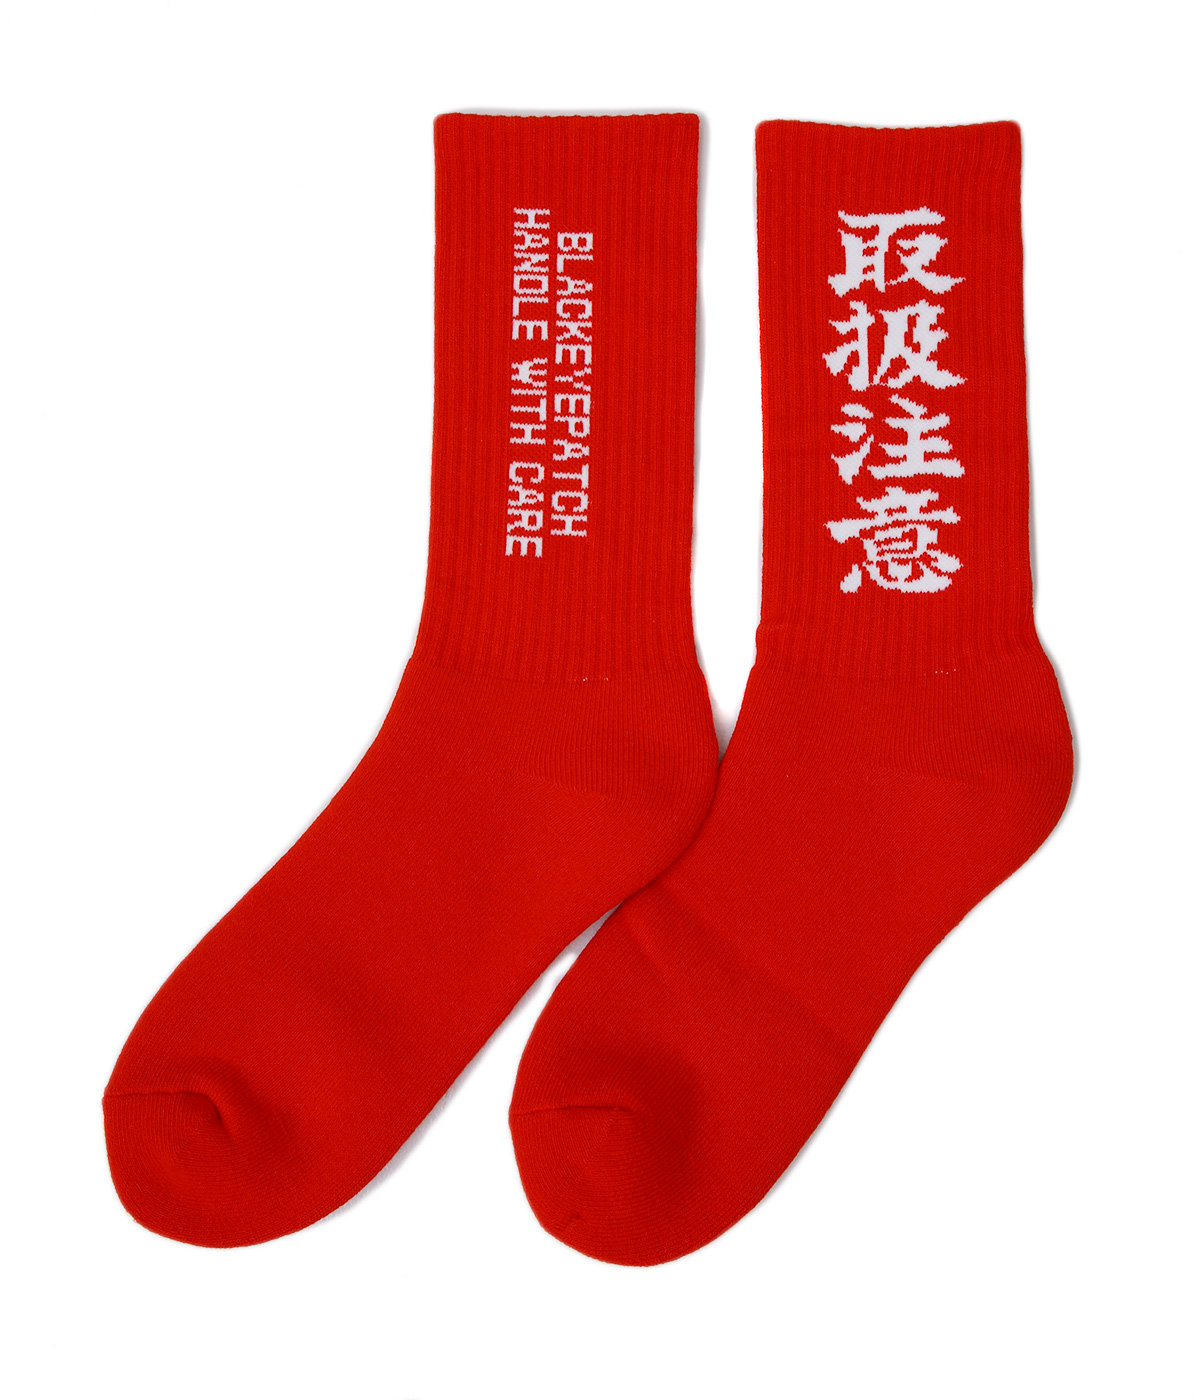 HANDLE WITH CARE SOCKS